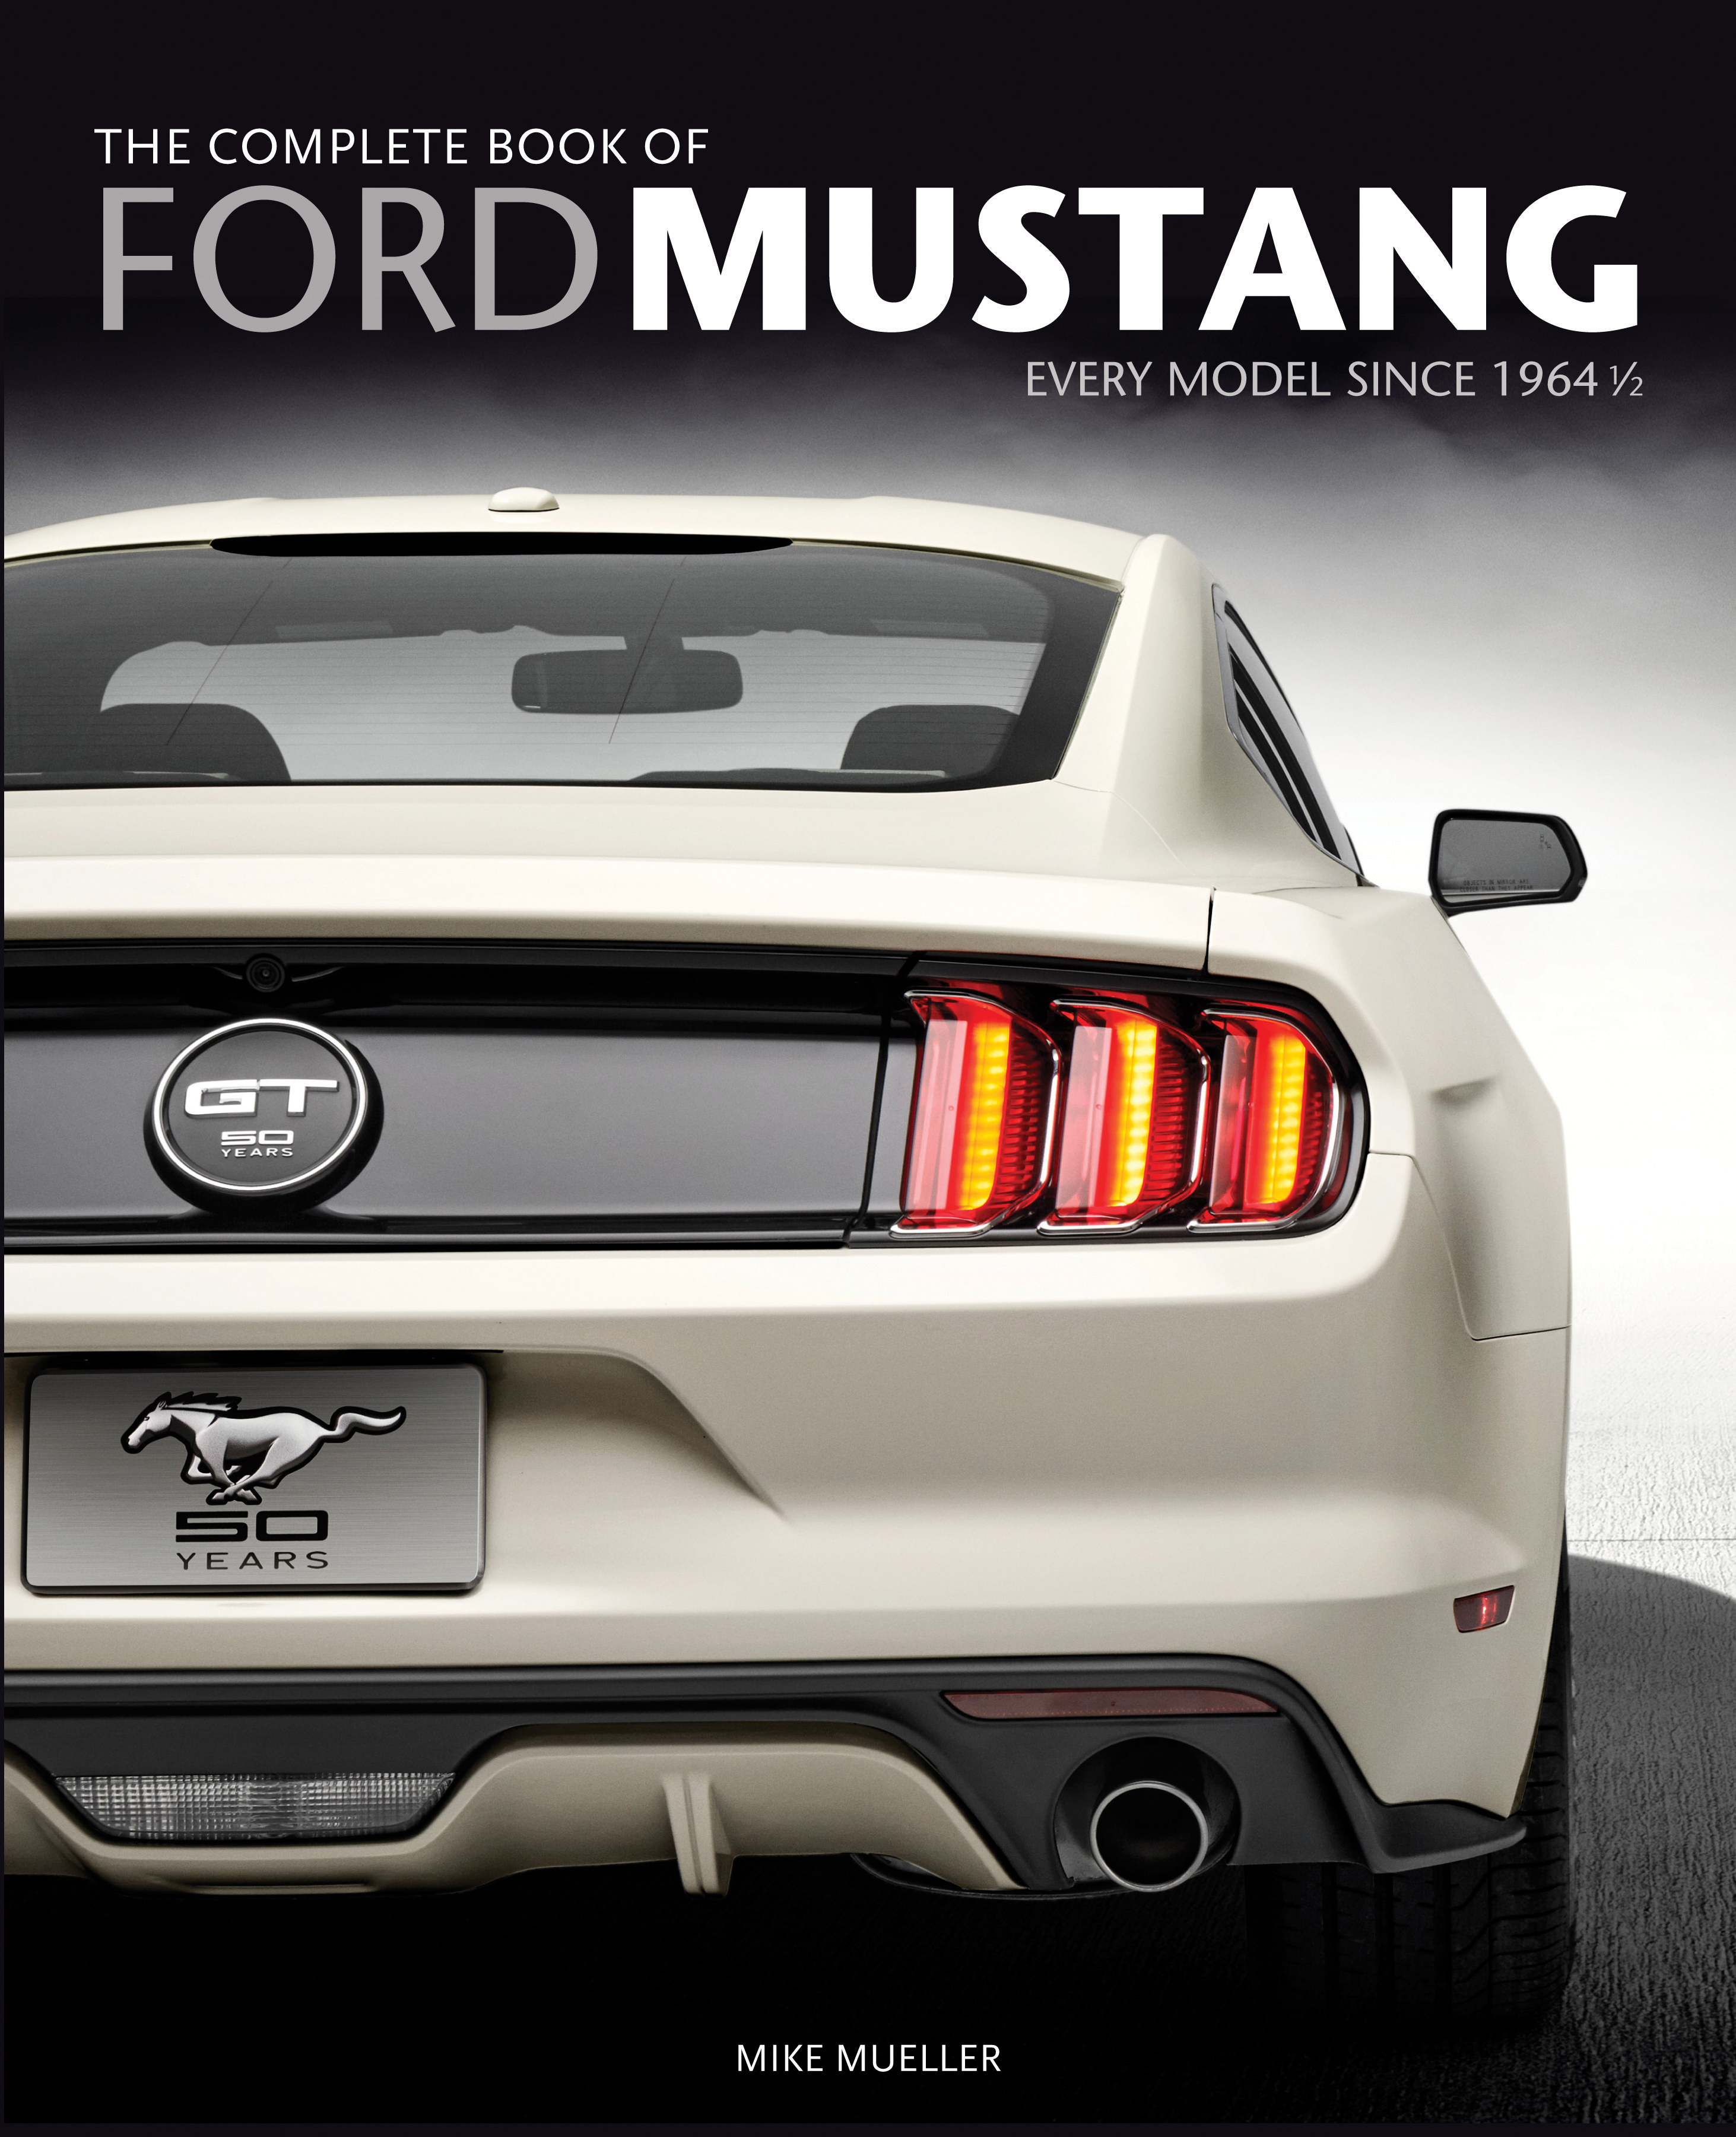 The Complete Book Of Ford Mustang Mike Mueller 9780760346624 1964 Brochure Download Cover